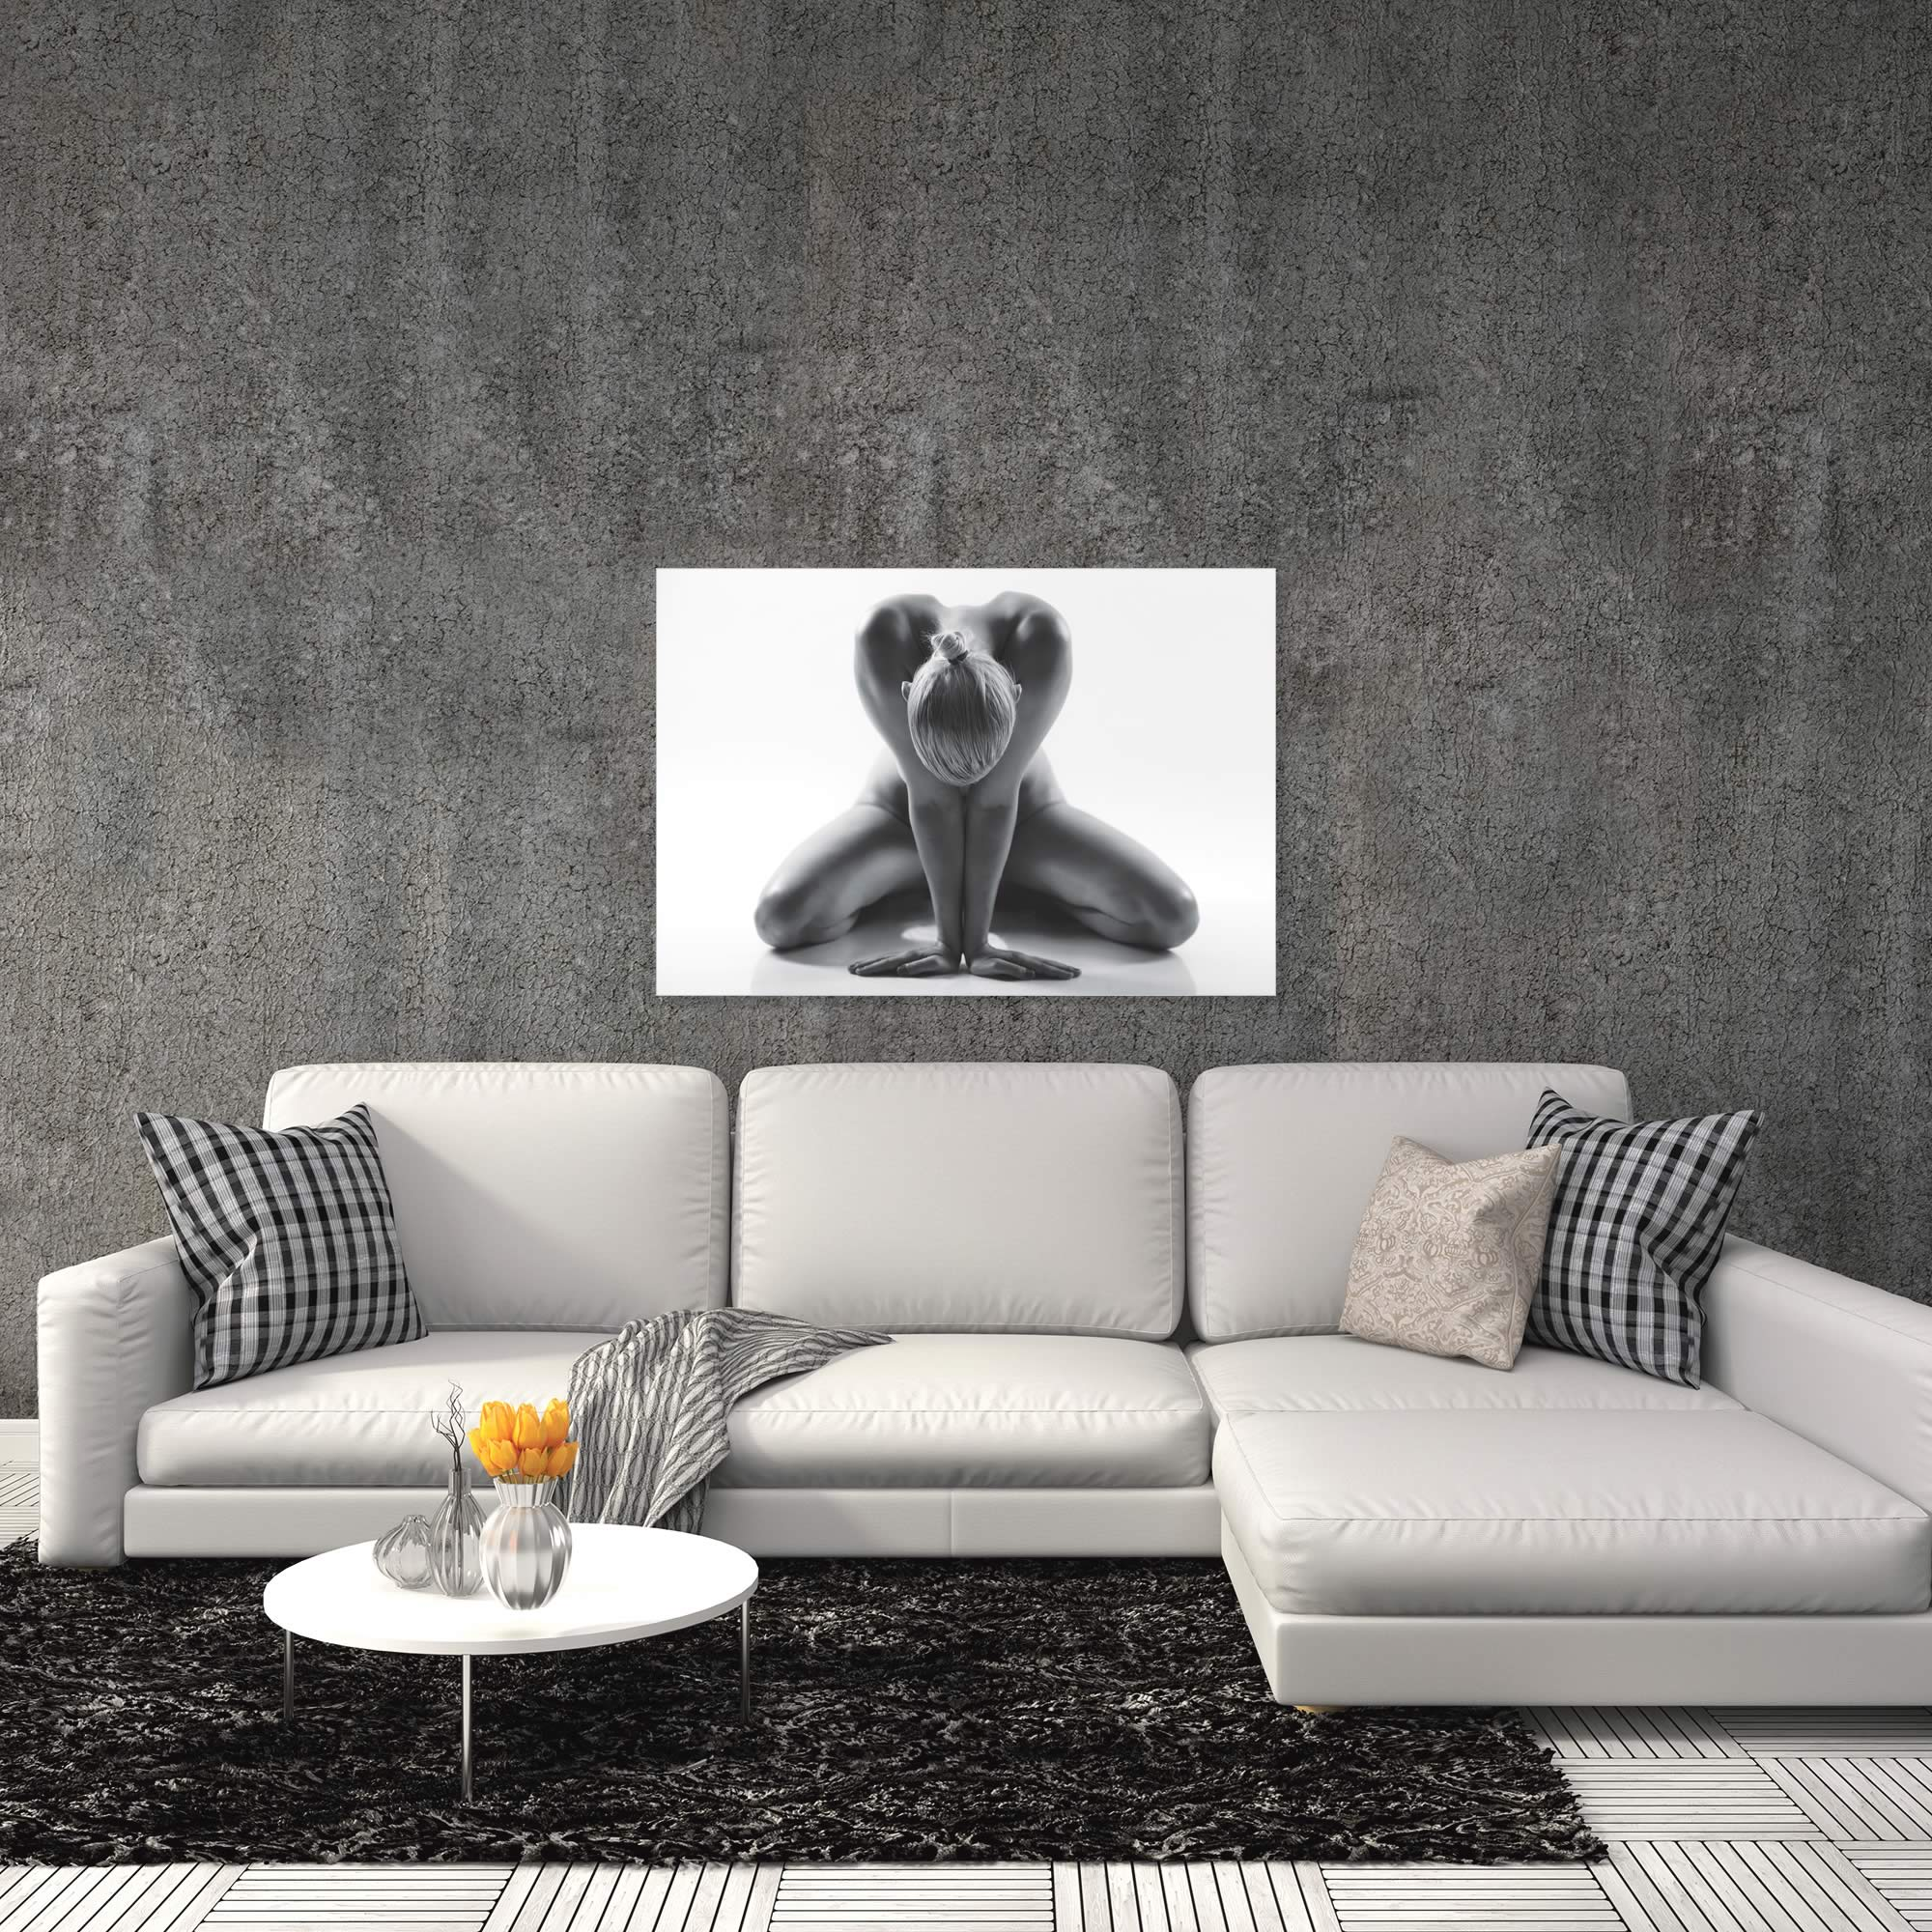 Yoga by Jan Lykke - Human Form Photography on Metal or Acrylic - Alternate View 1